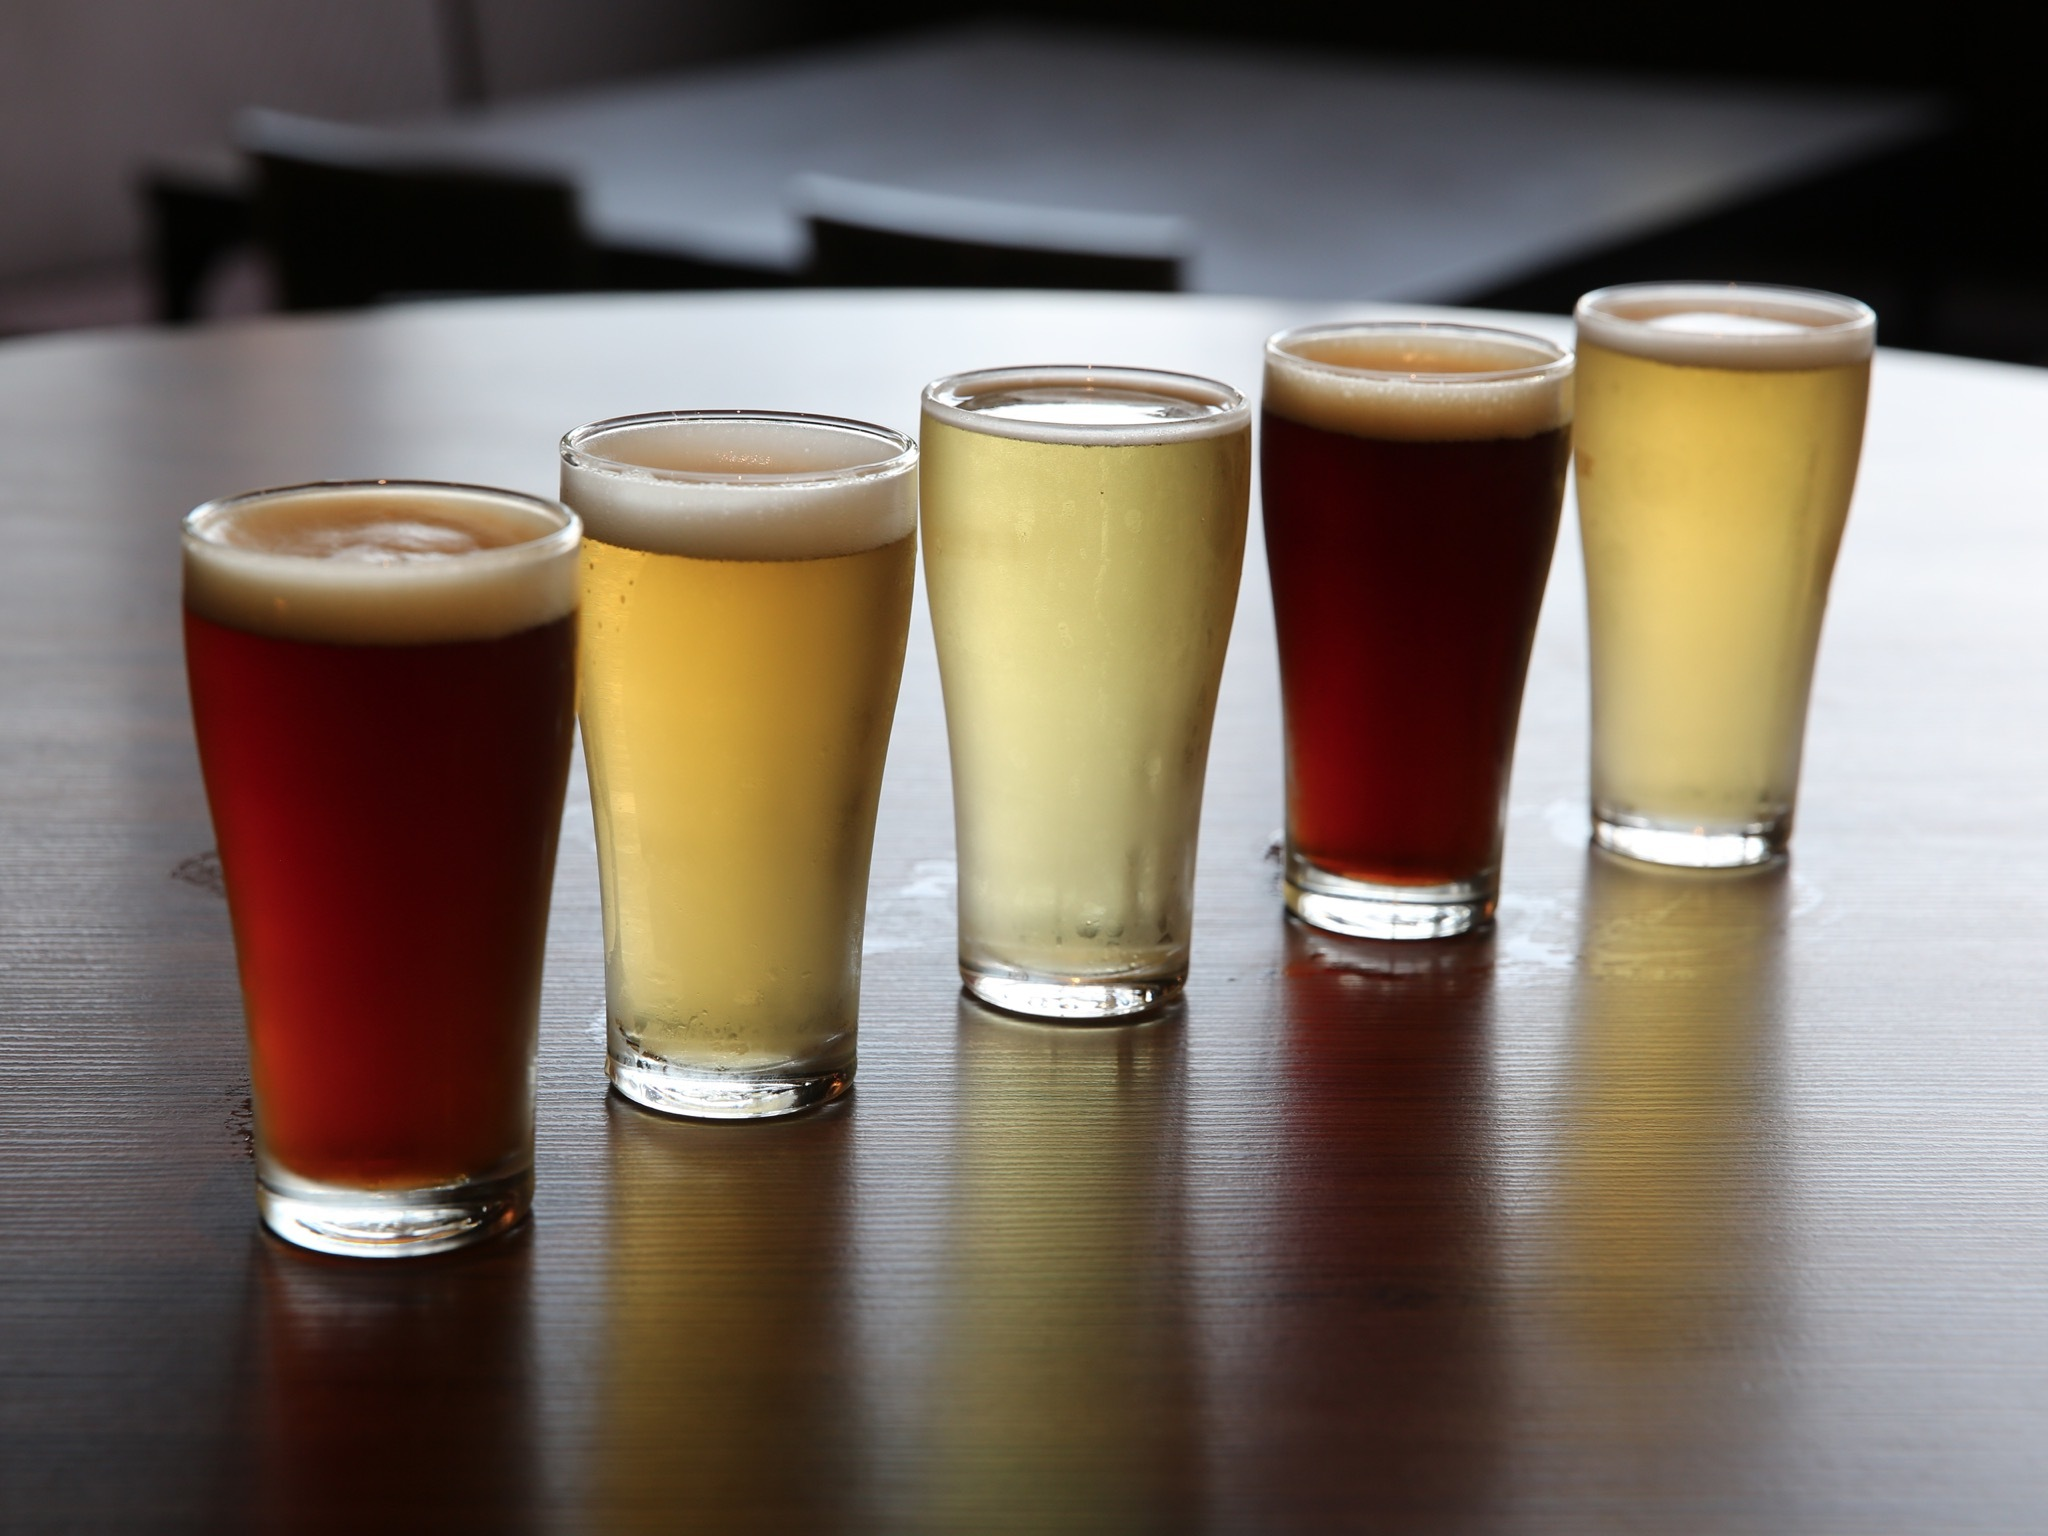 A line of five glasses of beer on a table